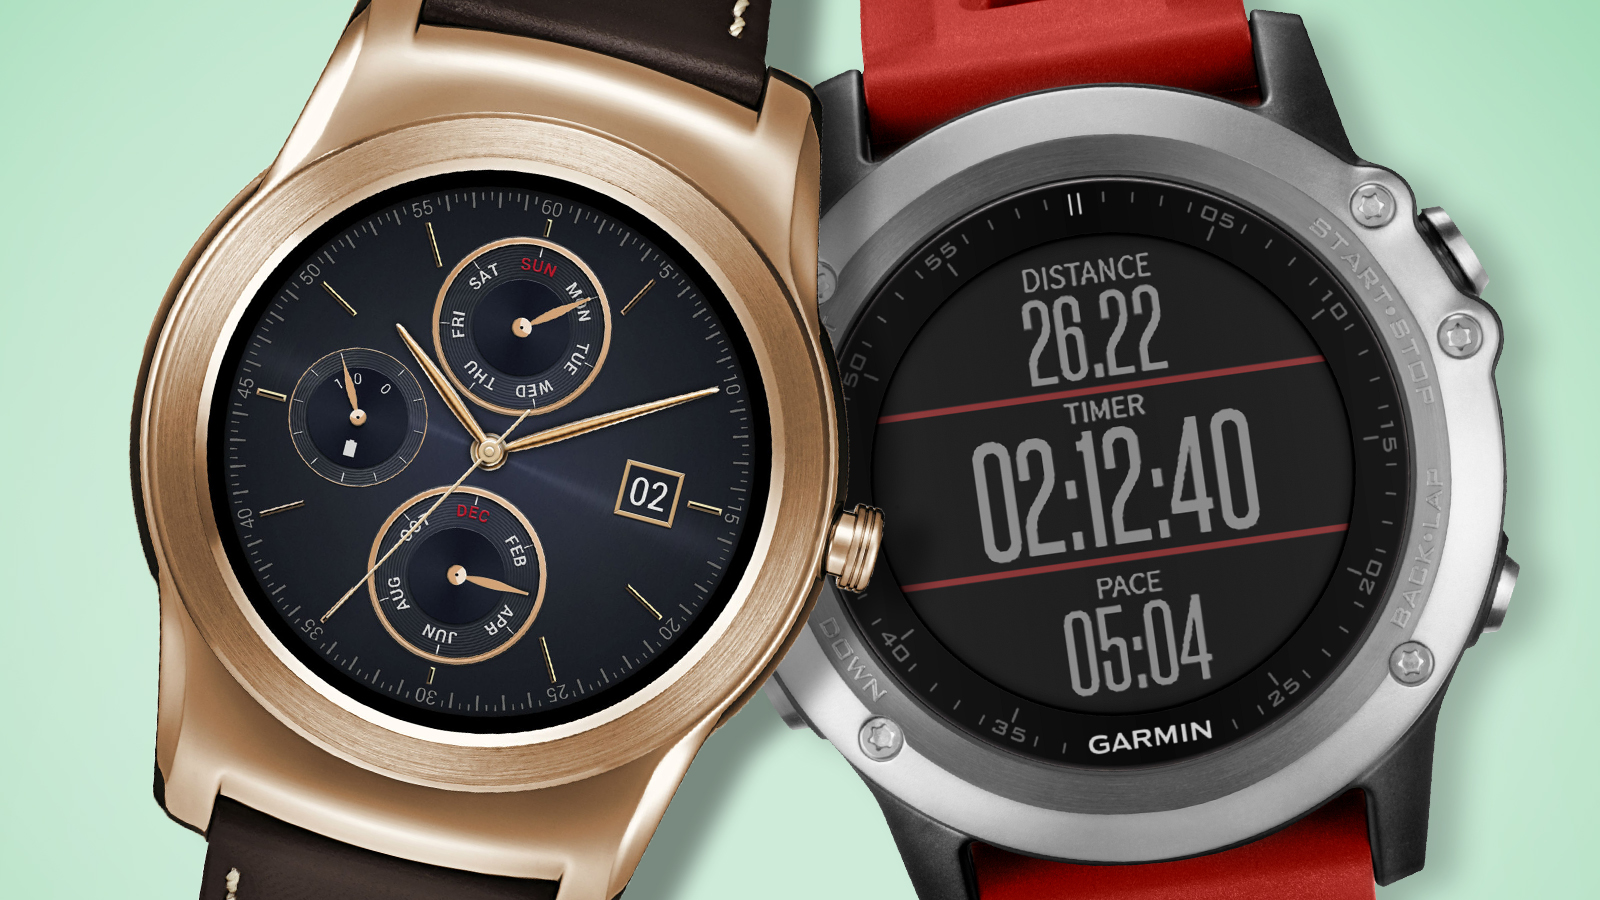 How to turn your Android watch into a fitness watch ... Map My Run App Android on mio heart monitor app, running app, keeper app, gym hero app, cyclemeter heart app, alarm clock plus app, star chart app, spark people app, light magnifier app, map with legend scale title, gain fitness app,